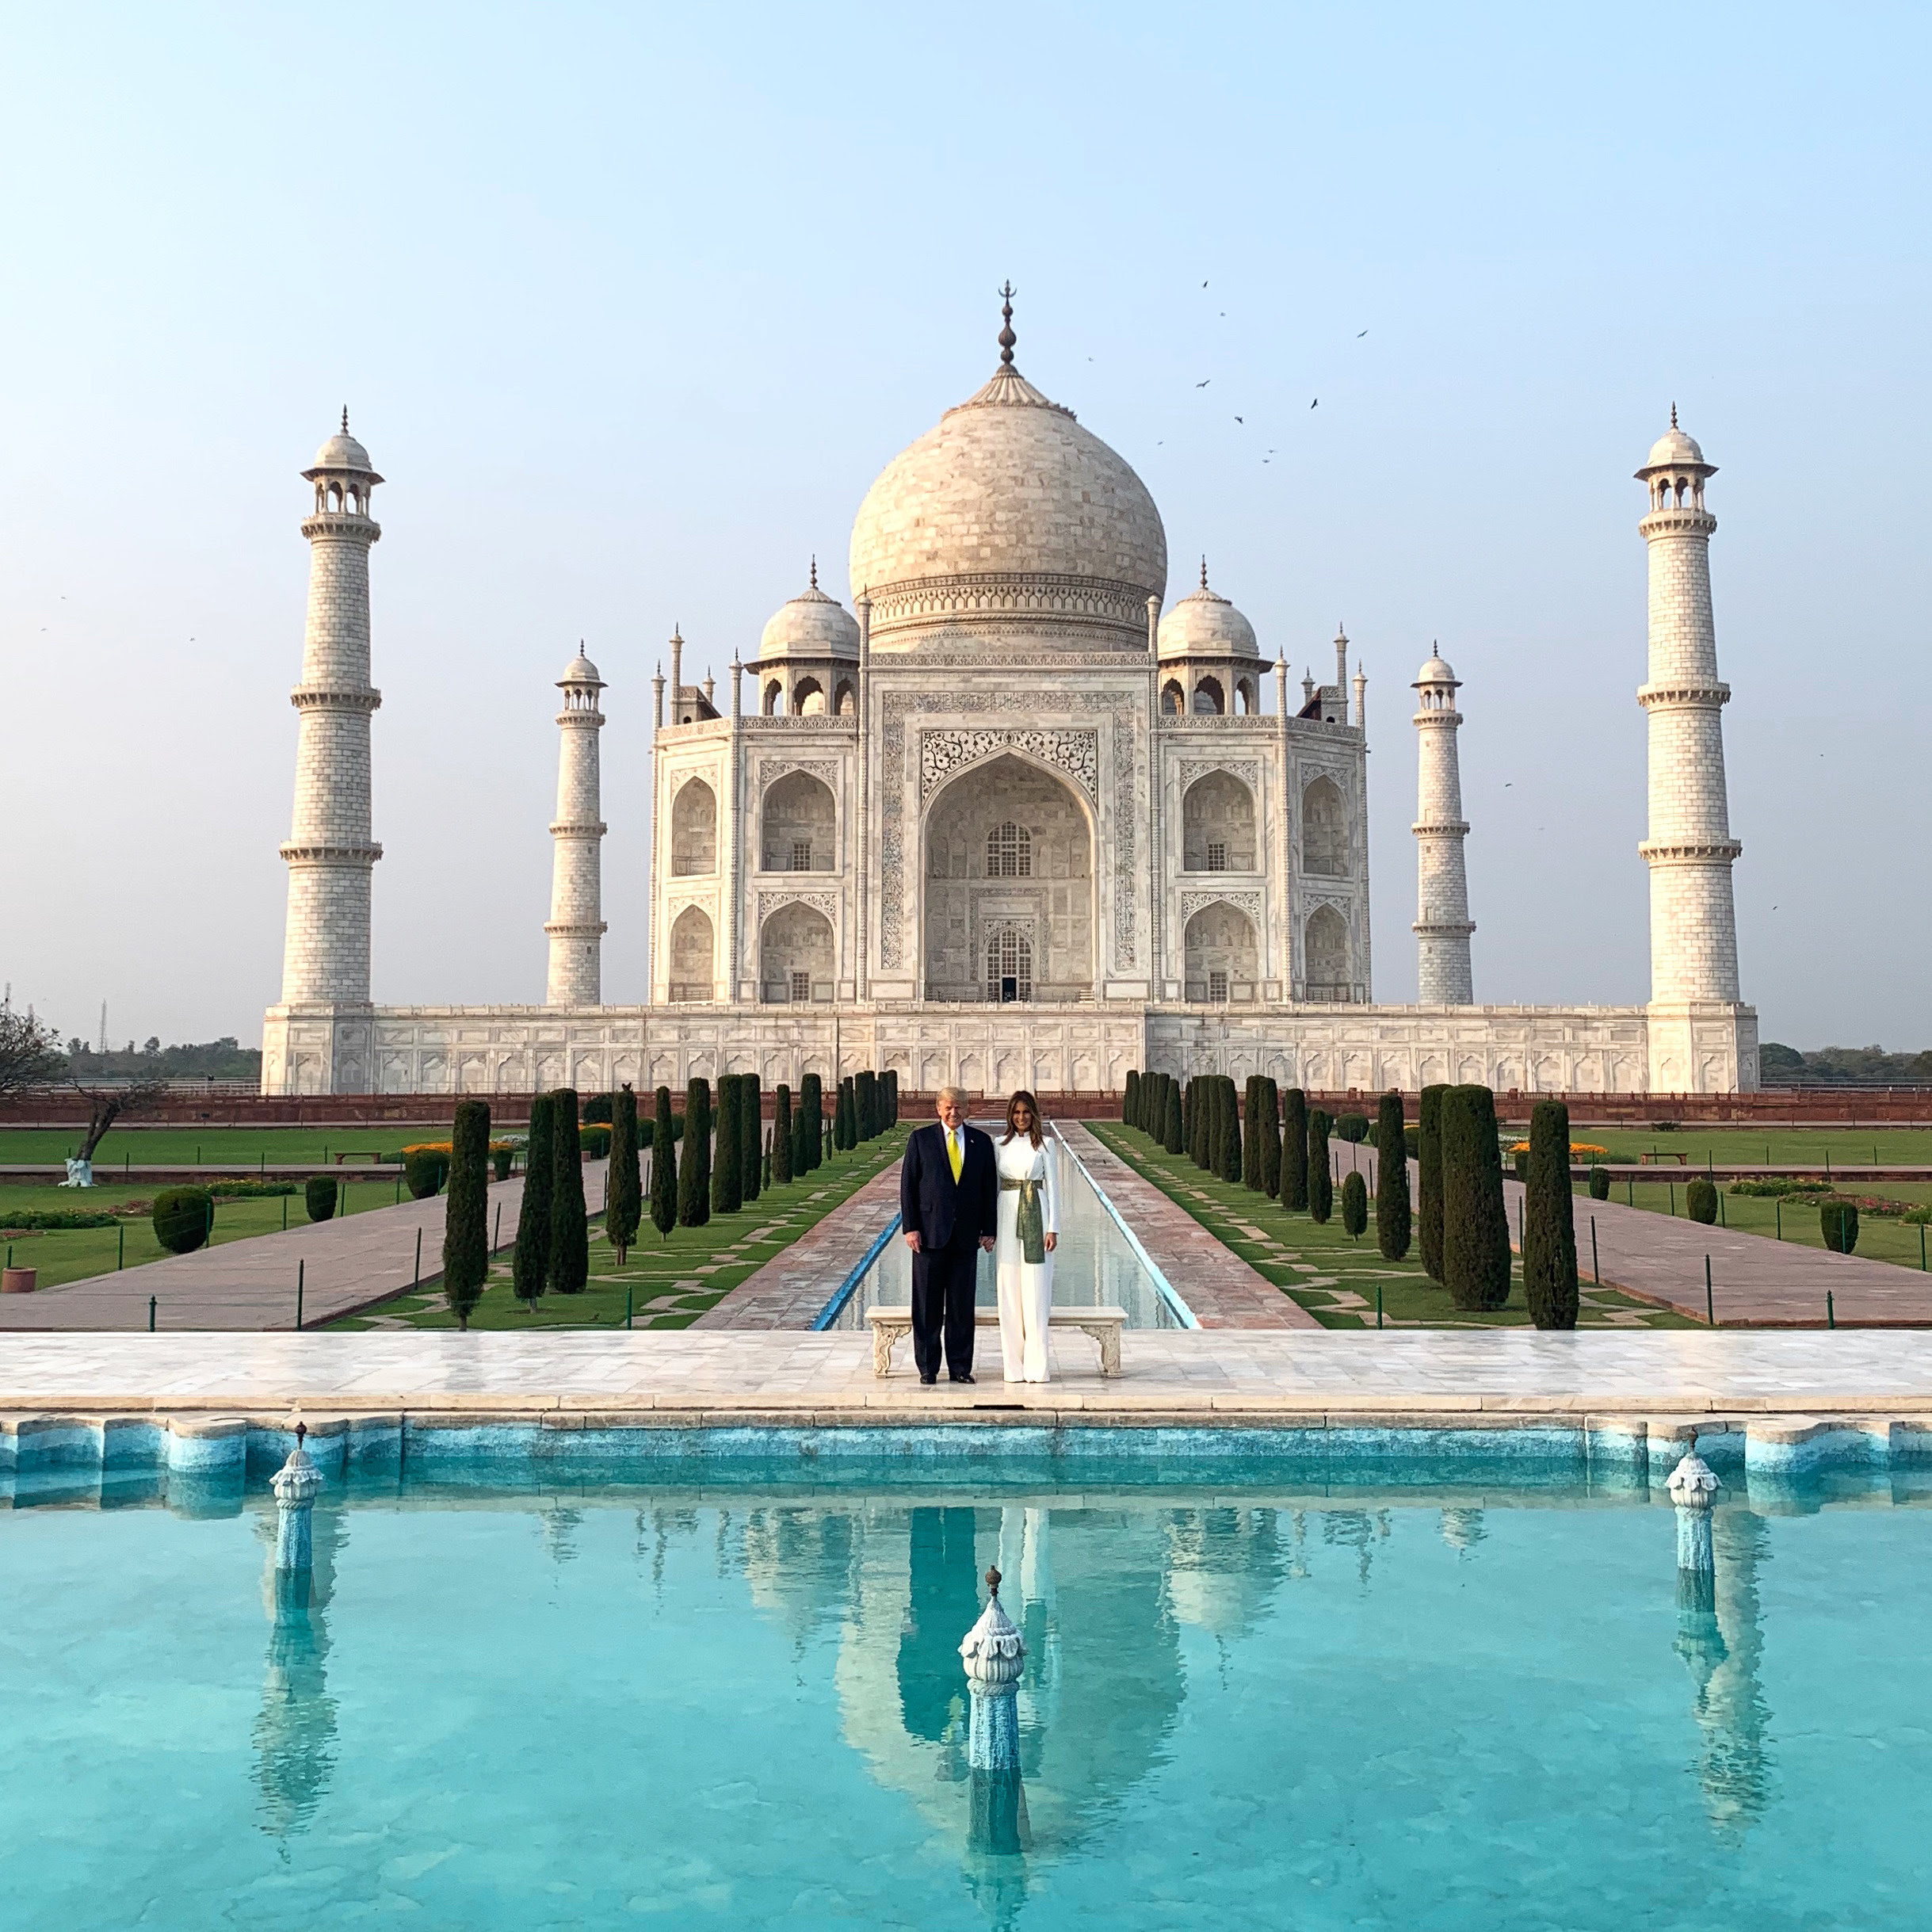 President Trump and wife Melania Trump posed for pictures in front of India's Taj Mahal February 24, 2020. (White House Press Pool)